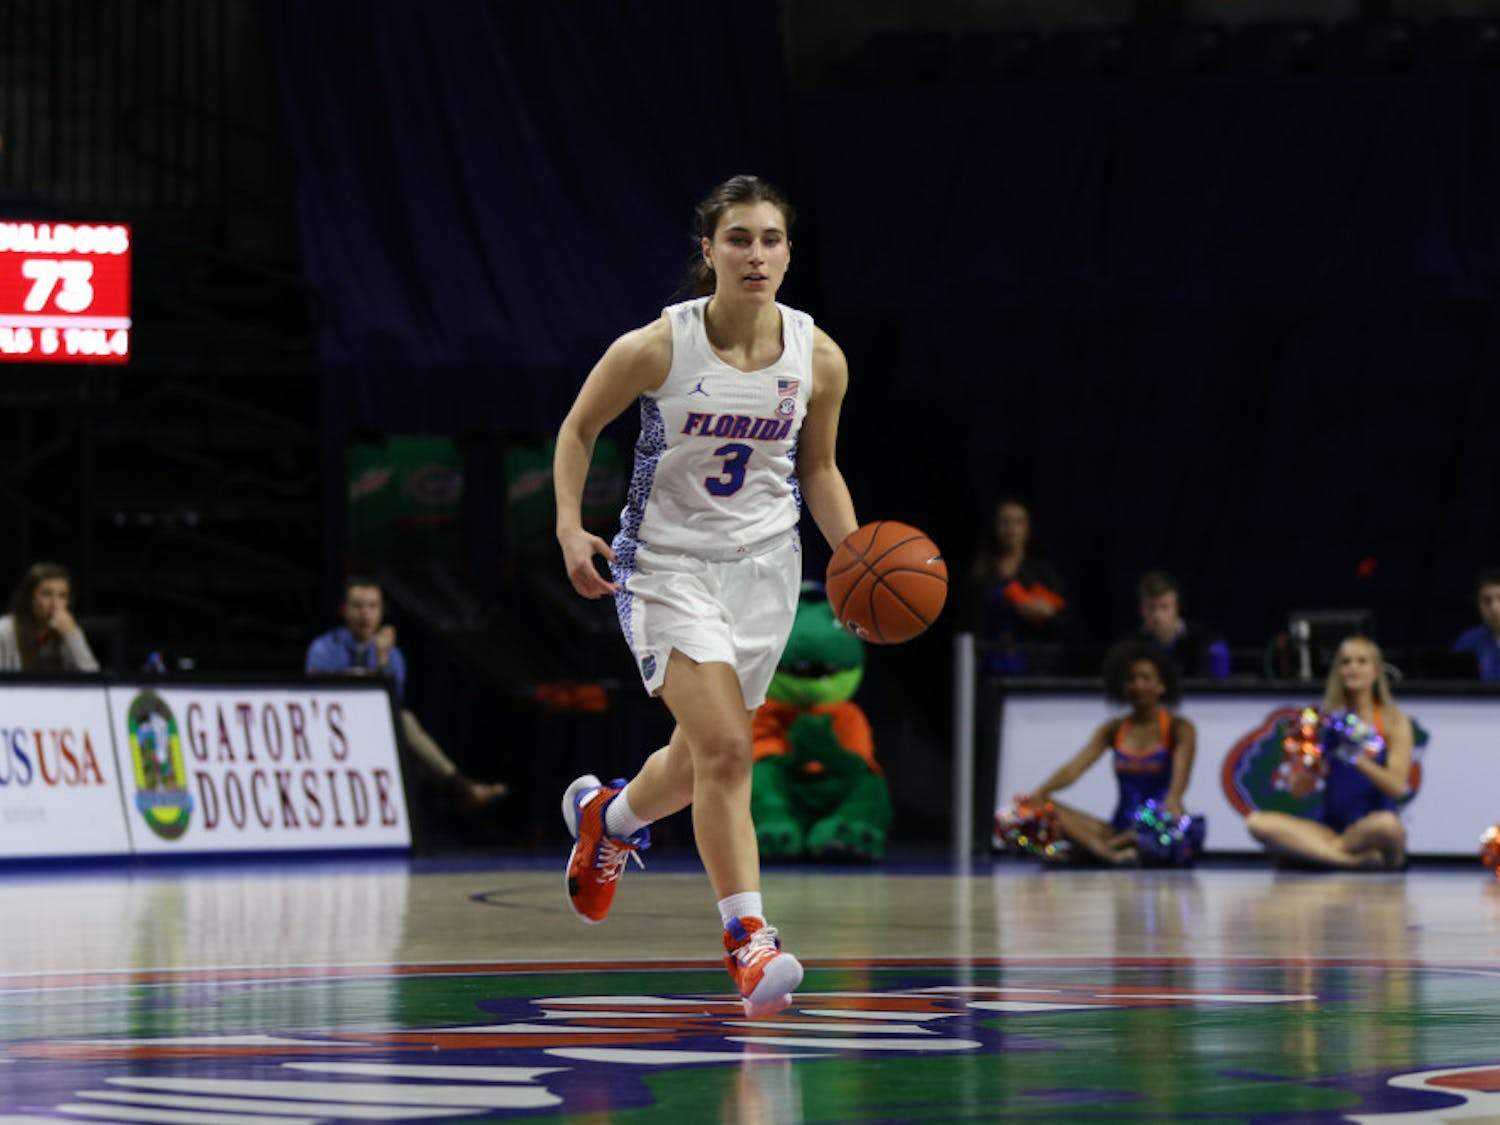 Guard Funda Nakkasoglu scored22 points on 6-of-9 shooting from beyond the arc in the Gators'80-62 loss to Texas A&M on Monday.